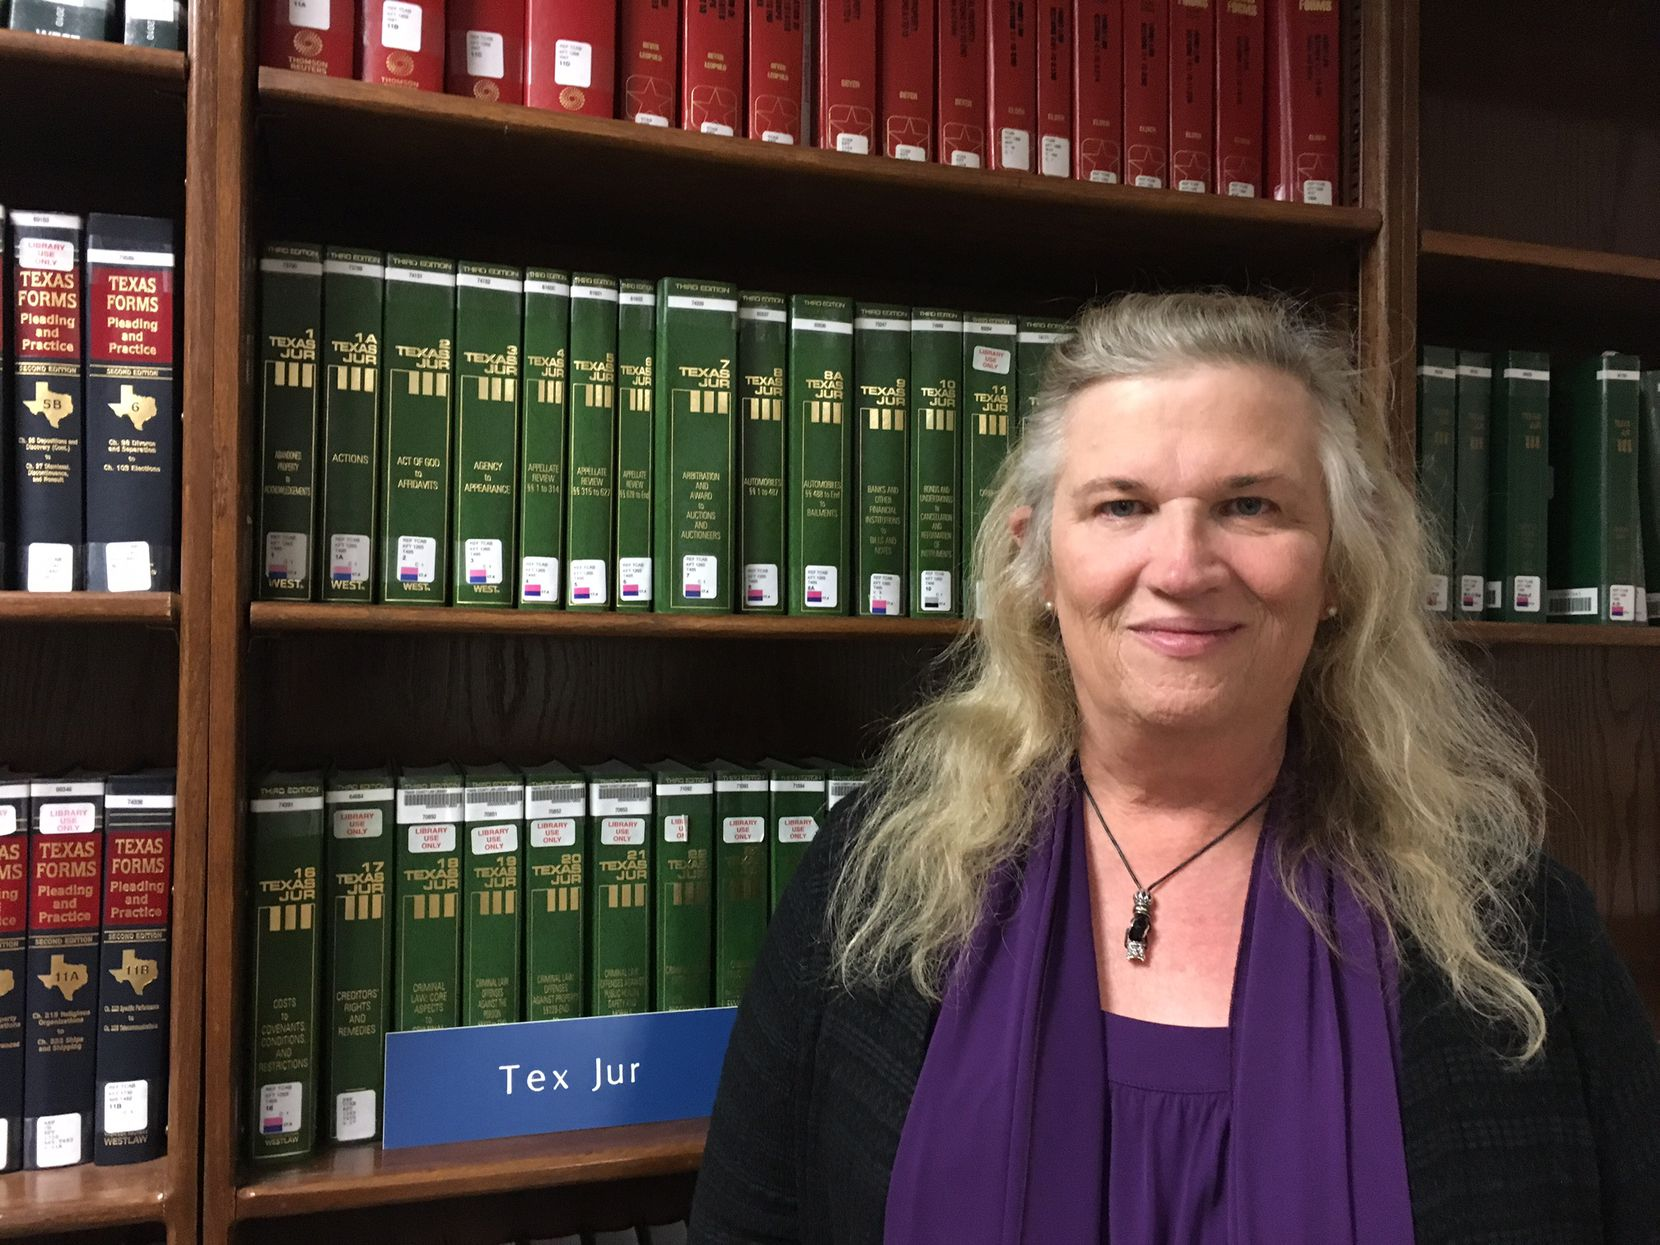 Claire Bow, a former Texas assistant attorney general who once led the State Office of Risk Management, poses during a November 2016 meeting of the Trans Name and Gender Marker Project, a free law clinic for transgender people sponsored by the Mithoff Pro Bono Program at the University of Texas at Austin, at the Travis County Law Library.